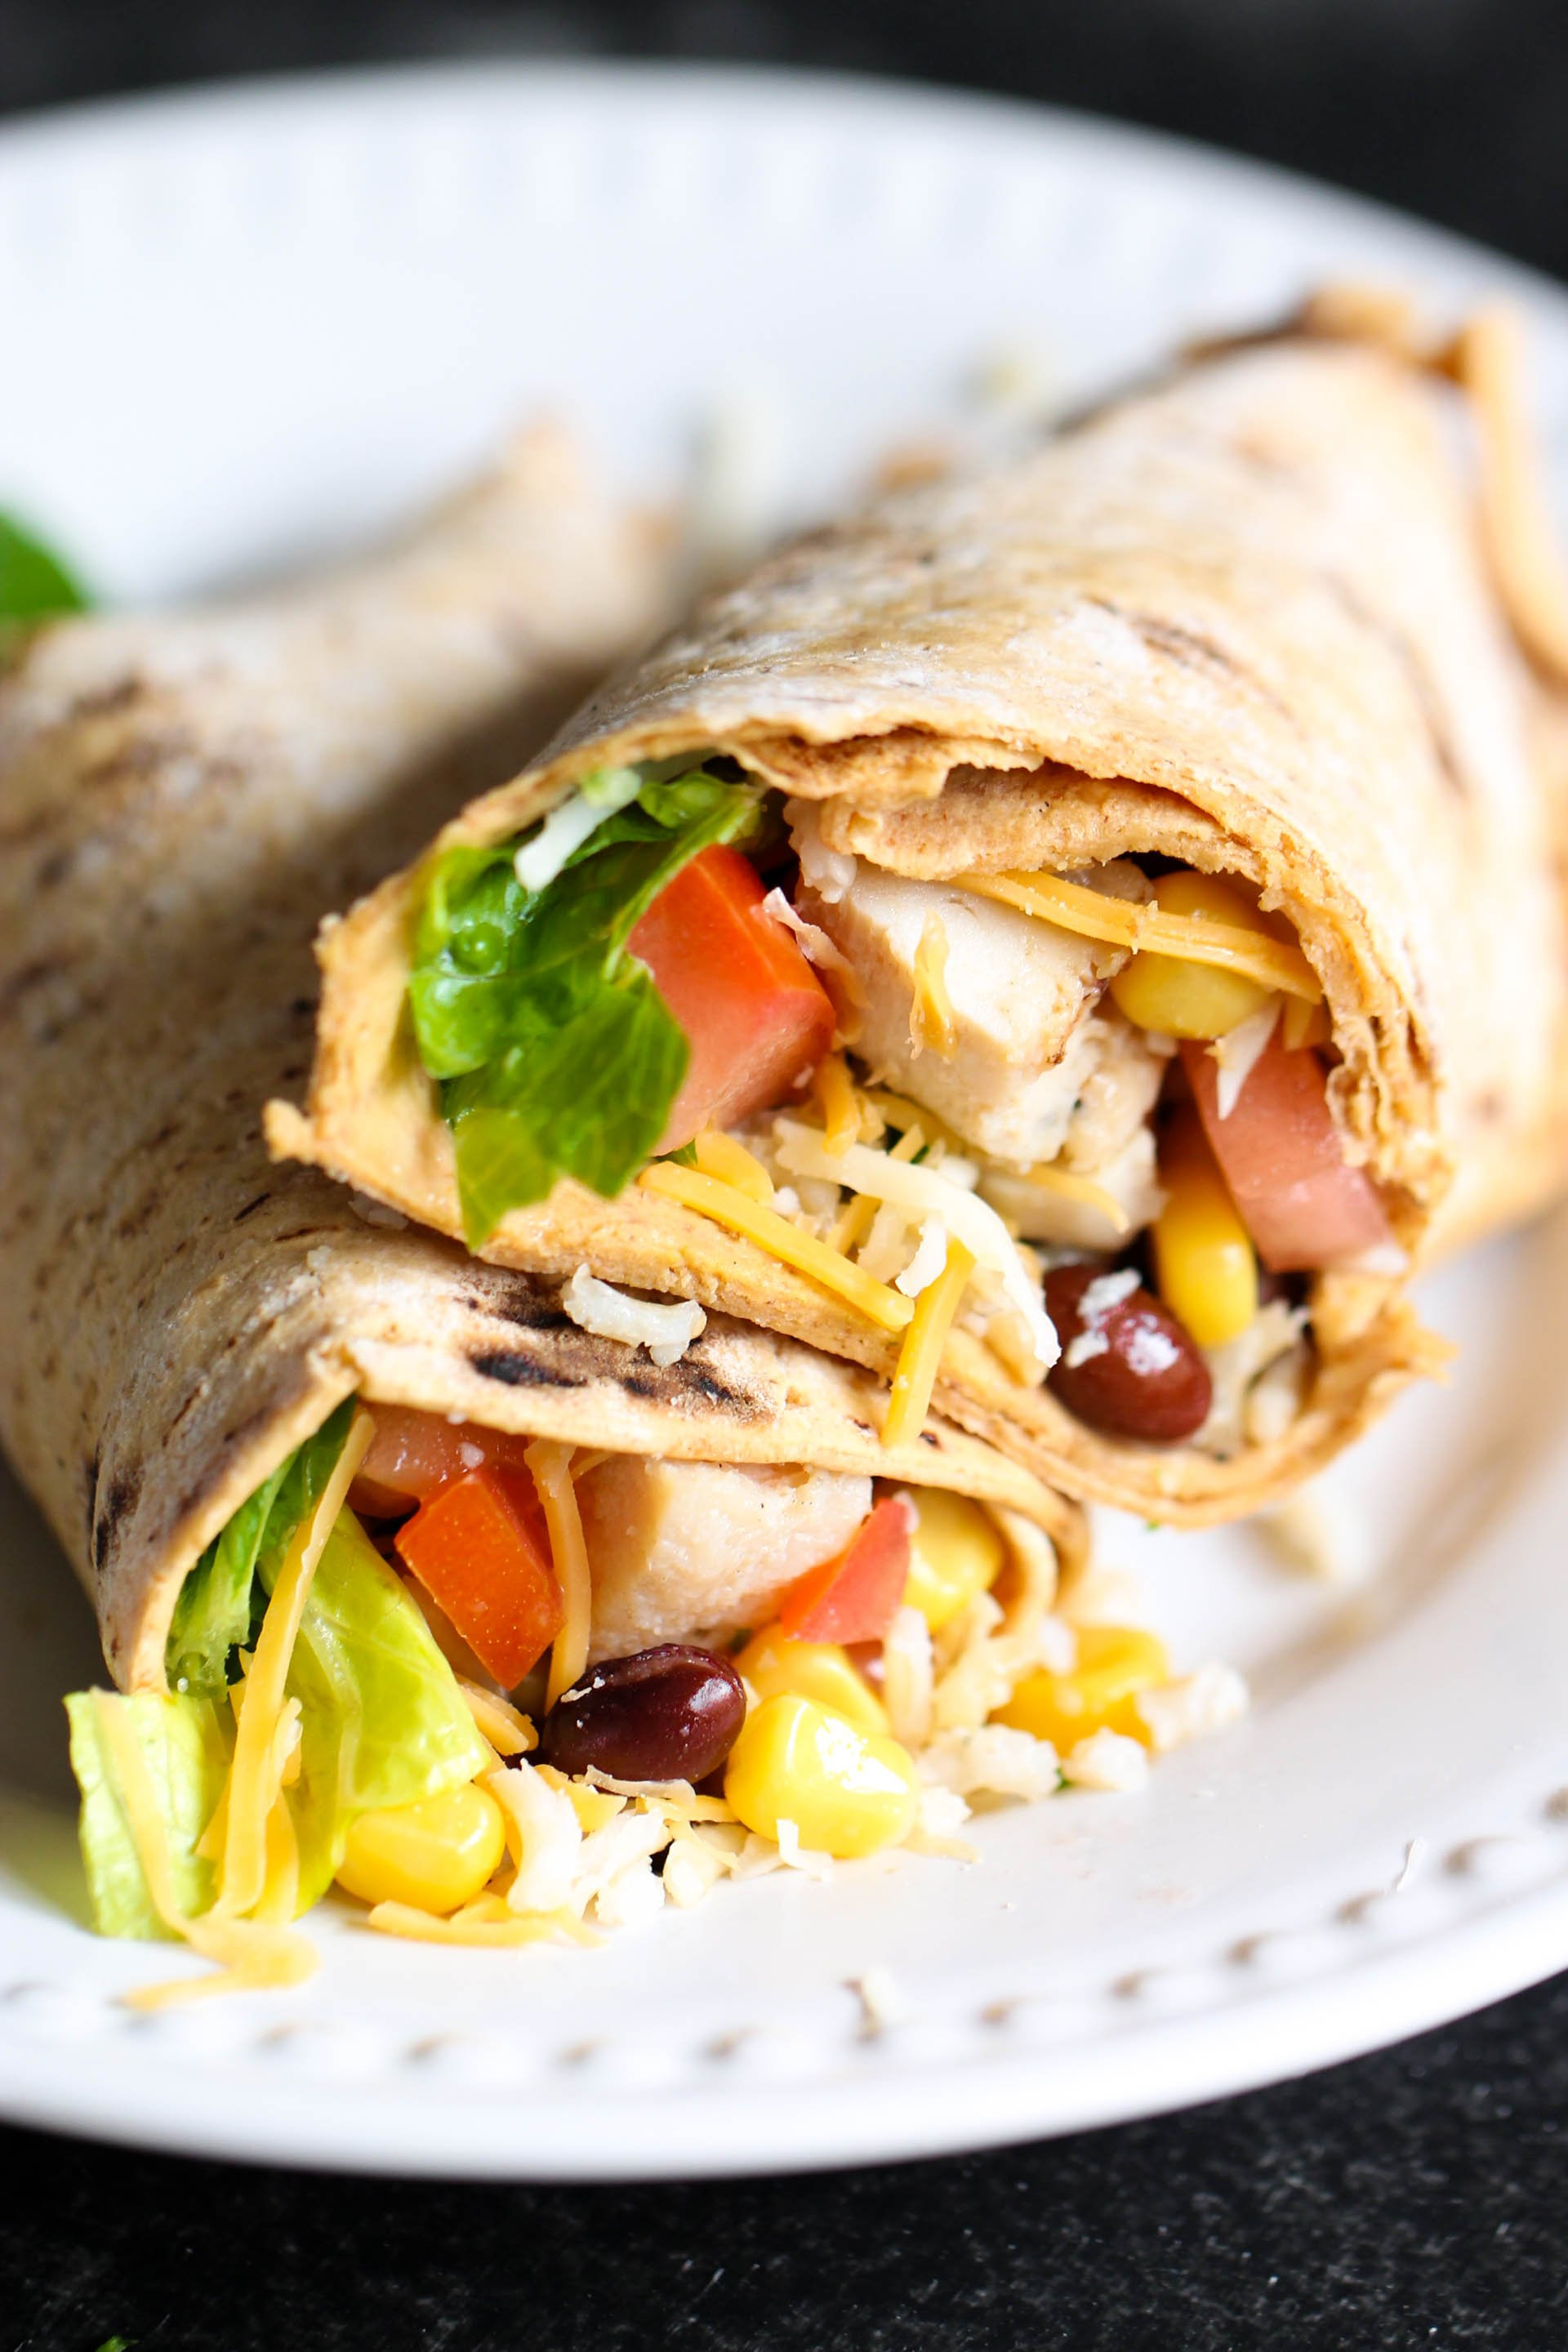 Spicy Chipotle Chicken Wrap